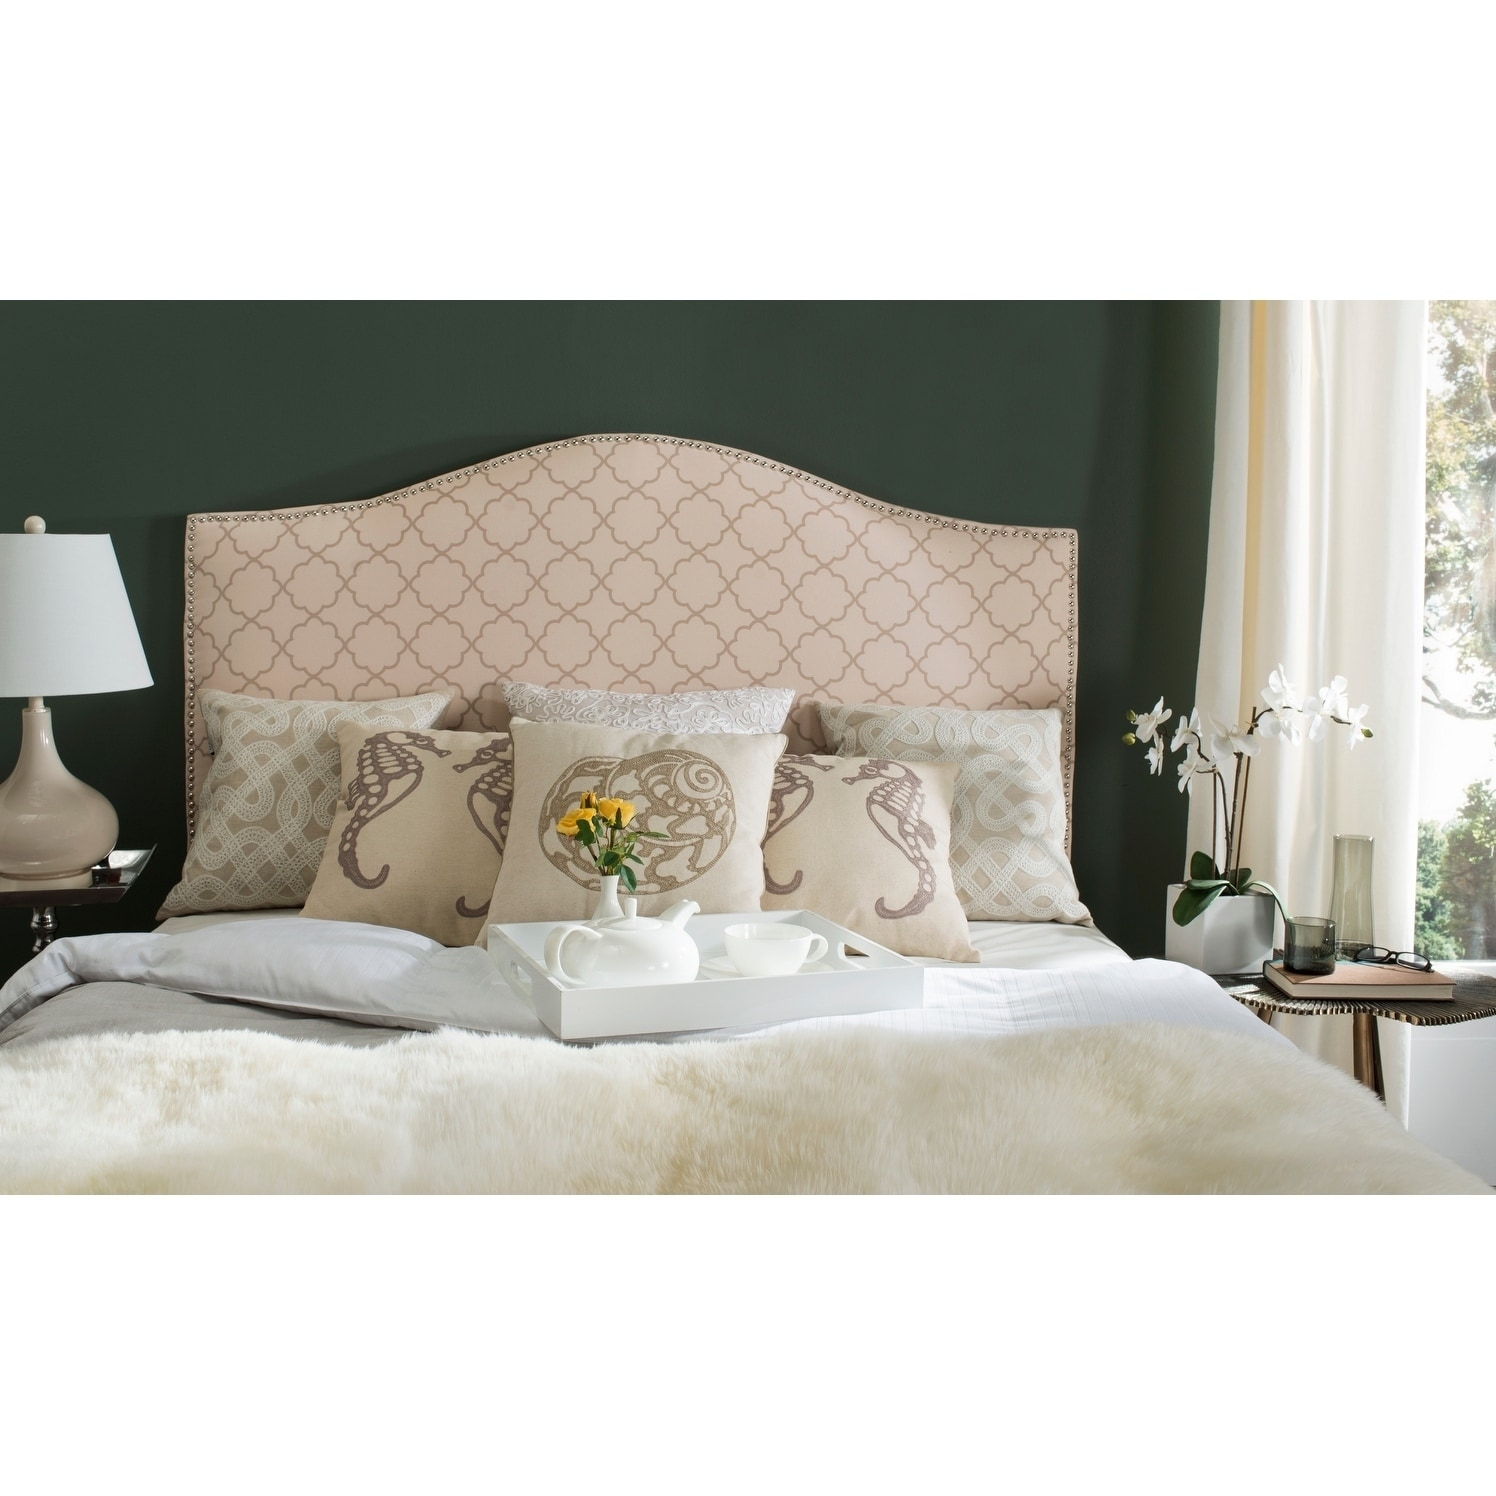 Shop Safavieh Connie Pink Beige Moroccan Pattern Camelback Headboard Silver Nailhead Queen On Sale Overstock 10329135